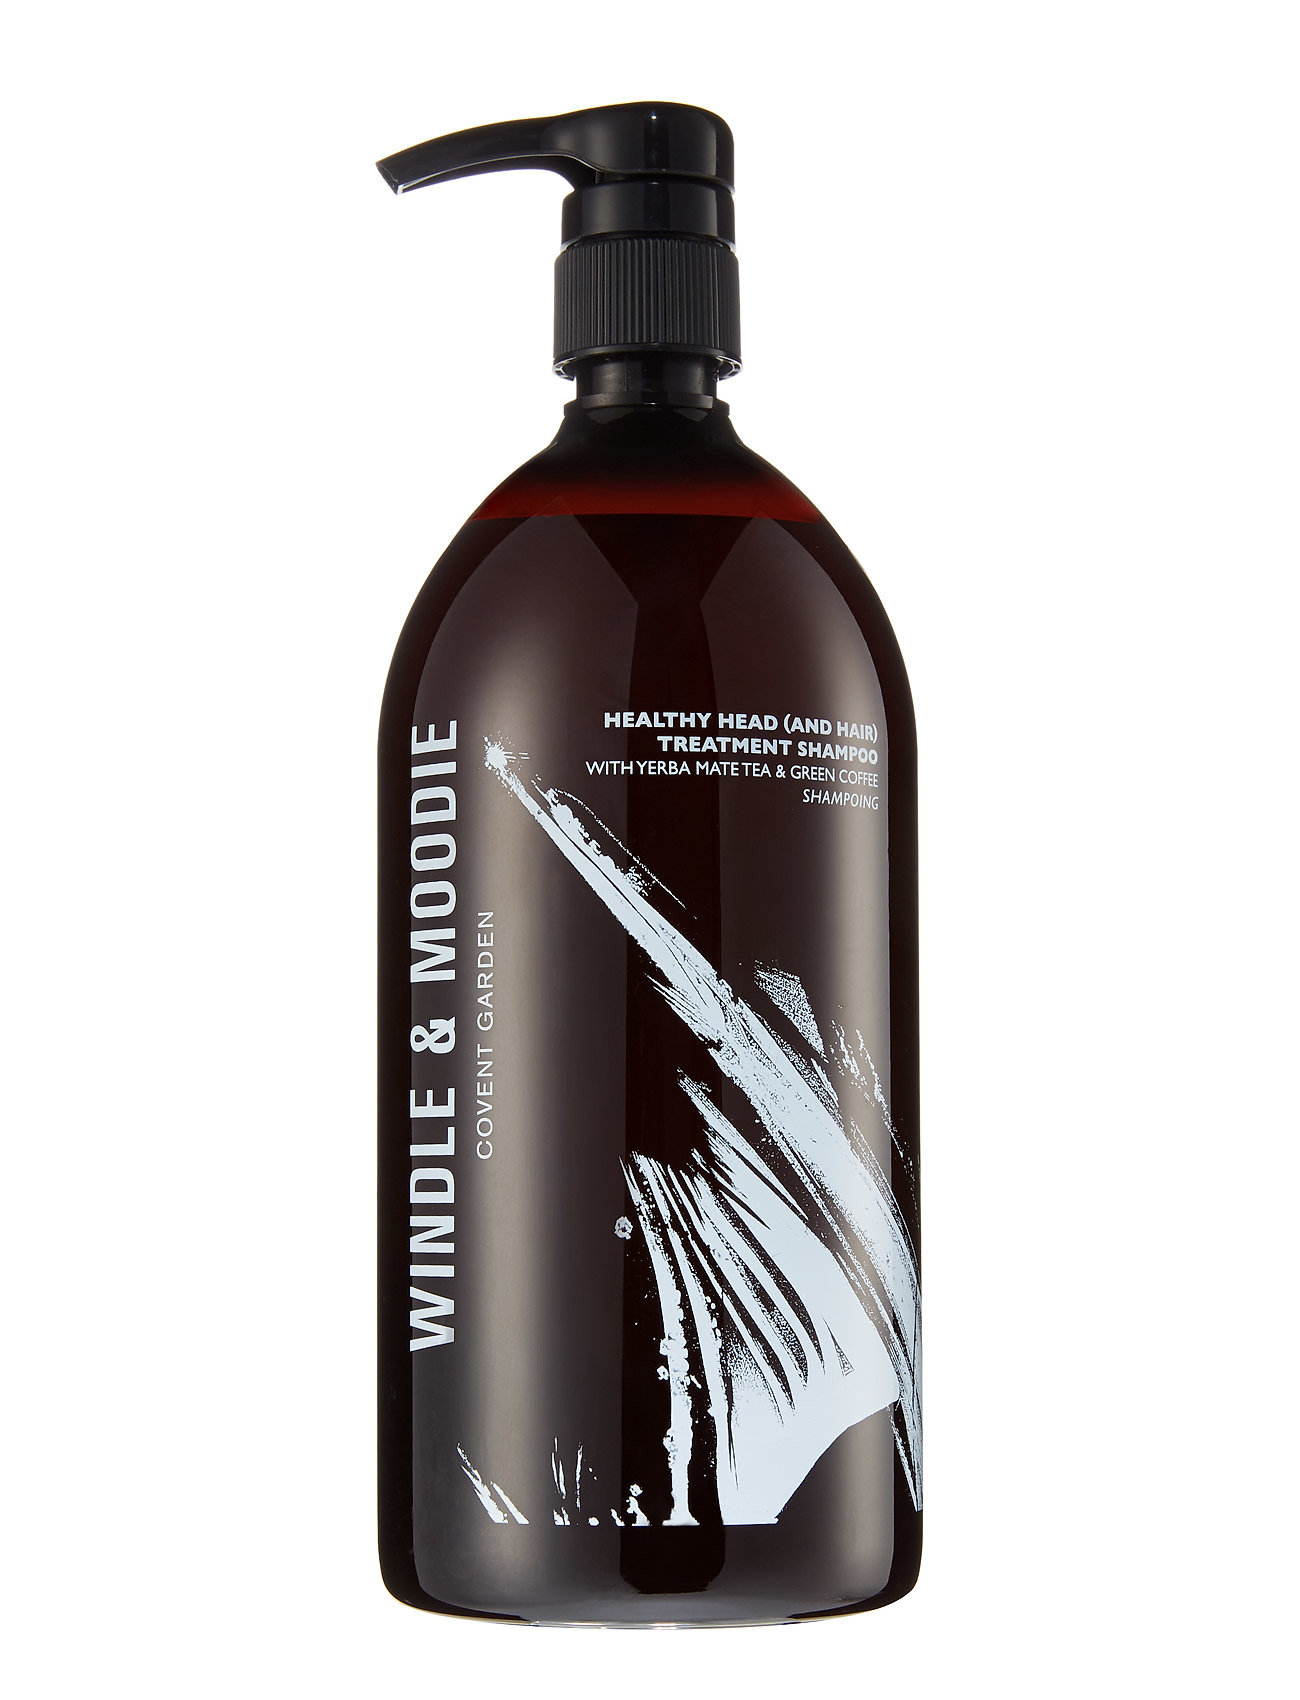 windle & moodie – Healthy head (and hair) treatment shampoo fra boozt.com dk